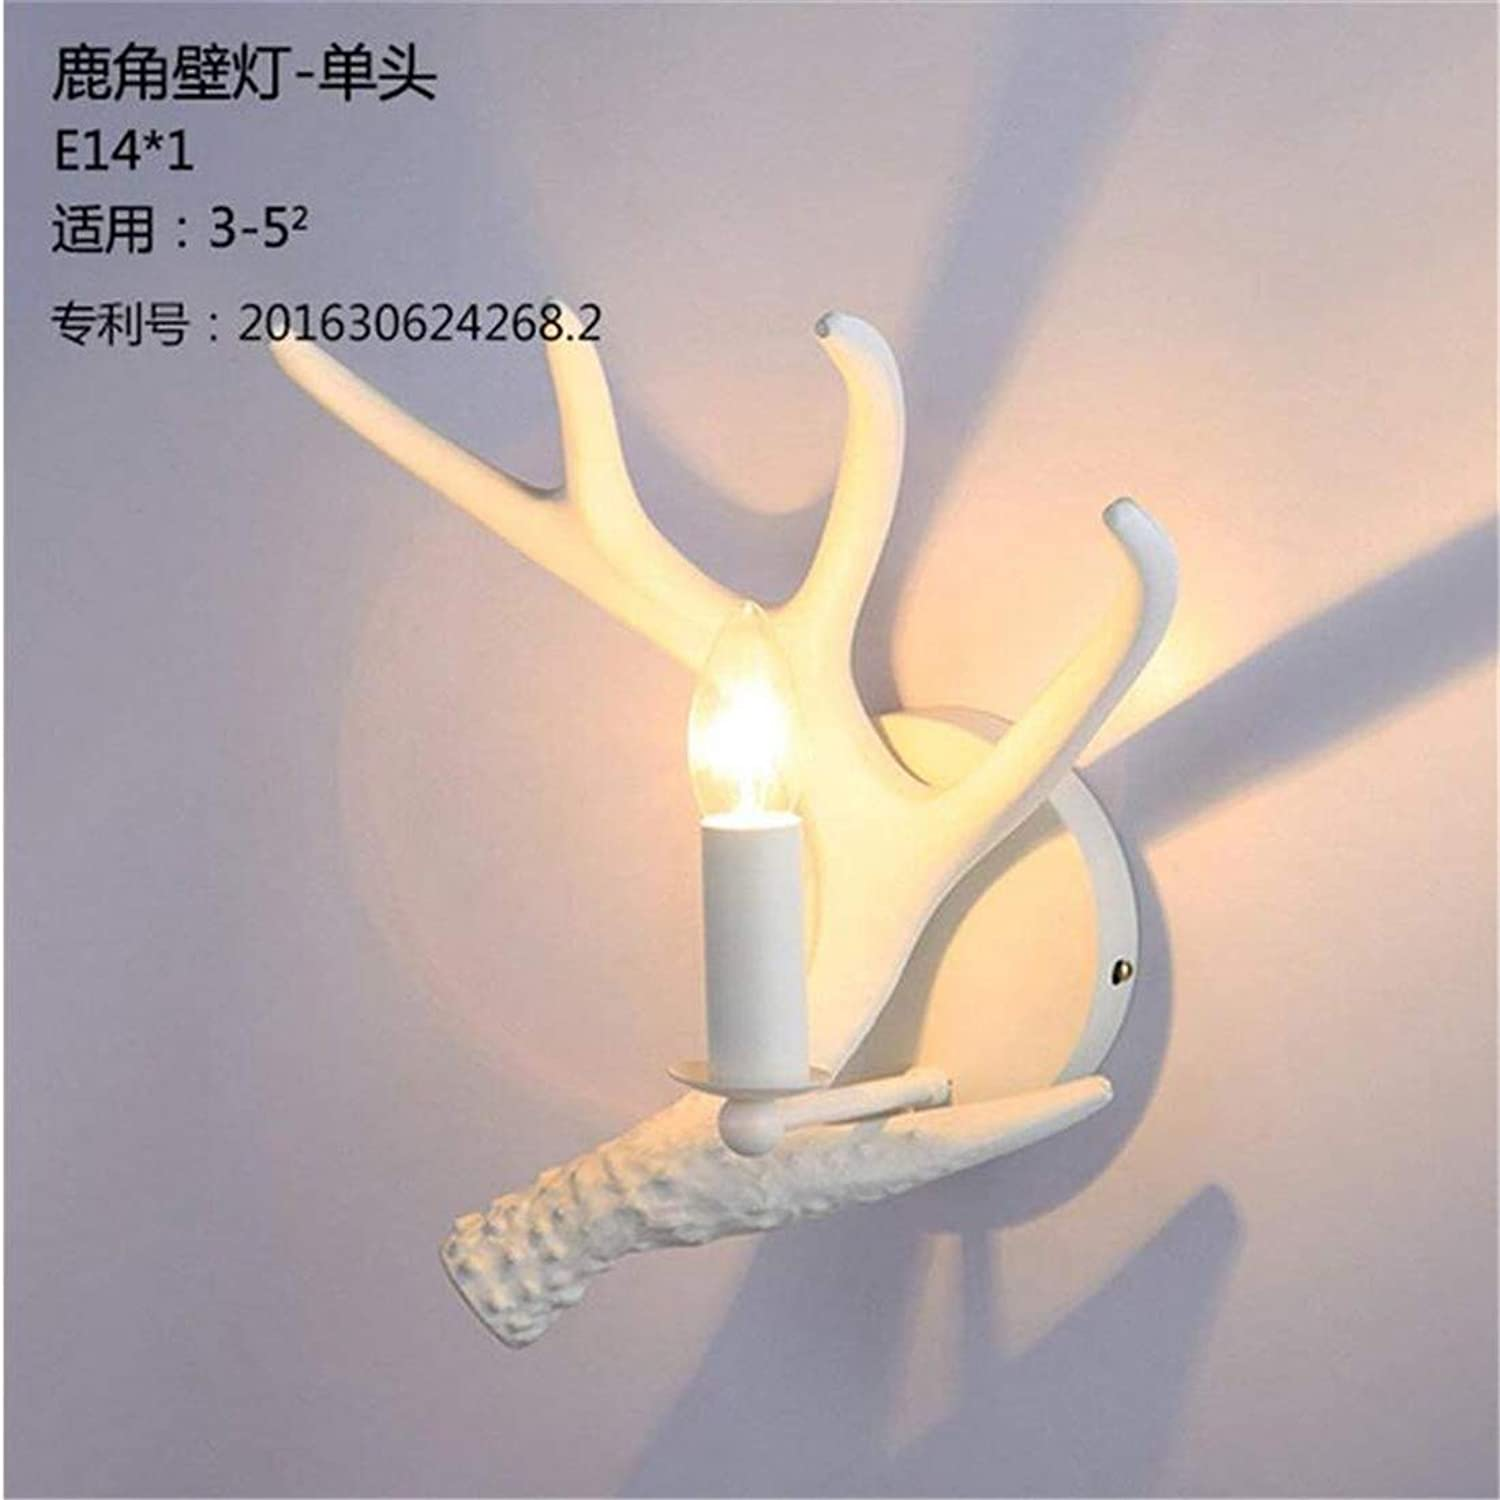 Modern Wall Lights Decorated Weiß Antler Wall Light Walls Antler Lamps Living Room Bedroom Corridor Staircase Wall Lamp [Energy Class A+++]